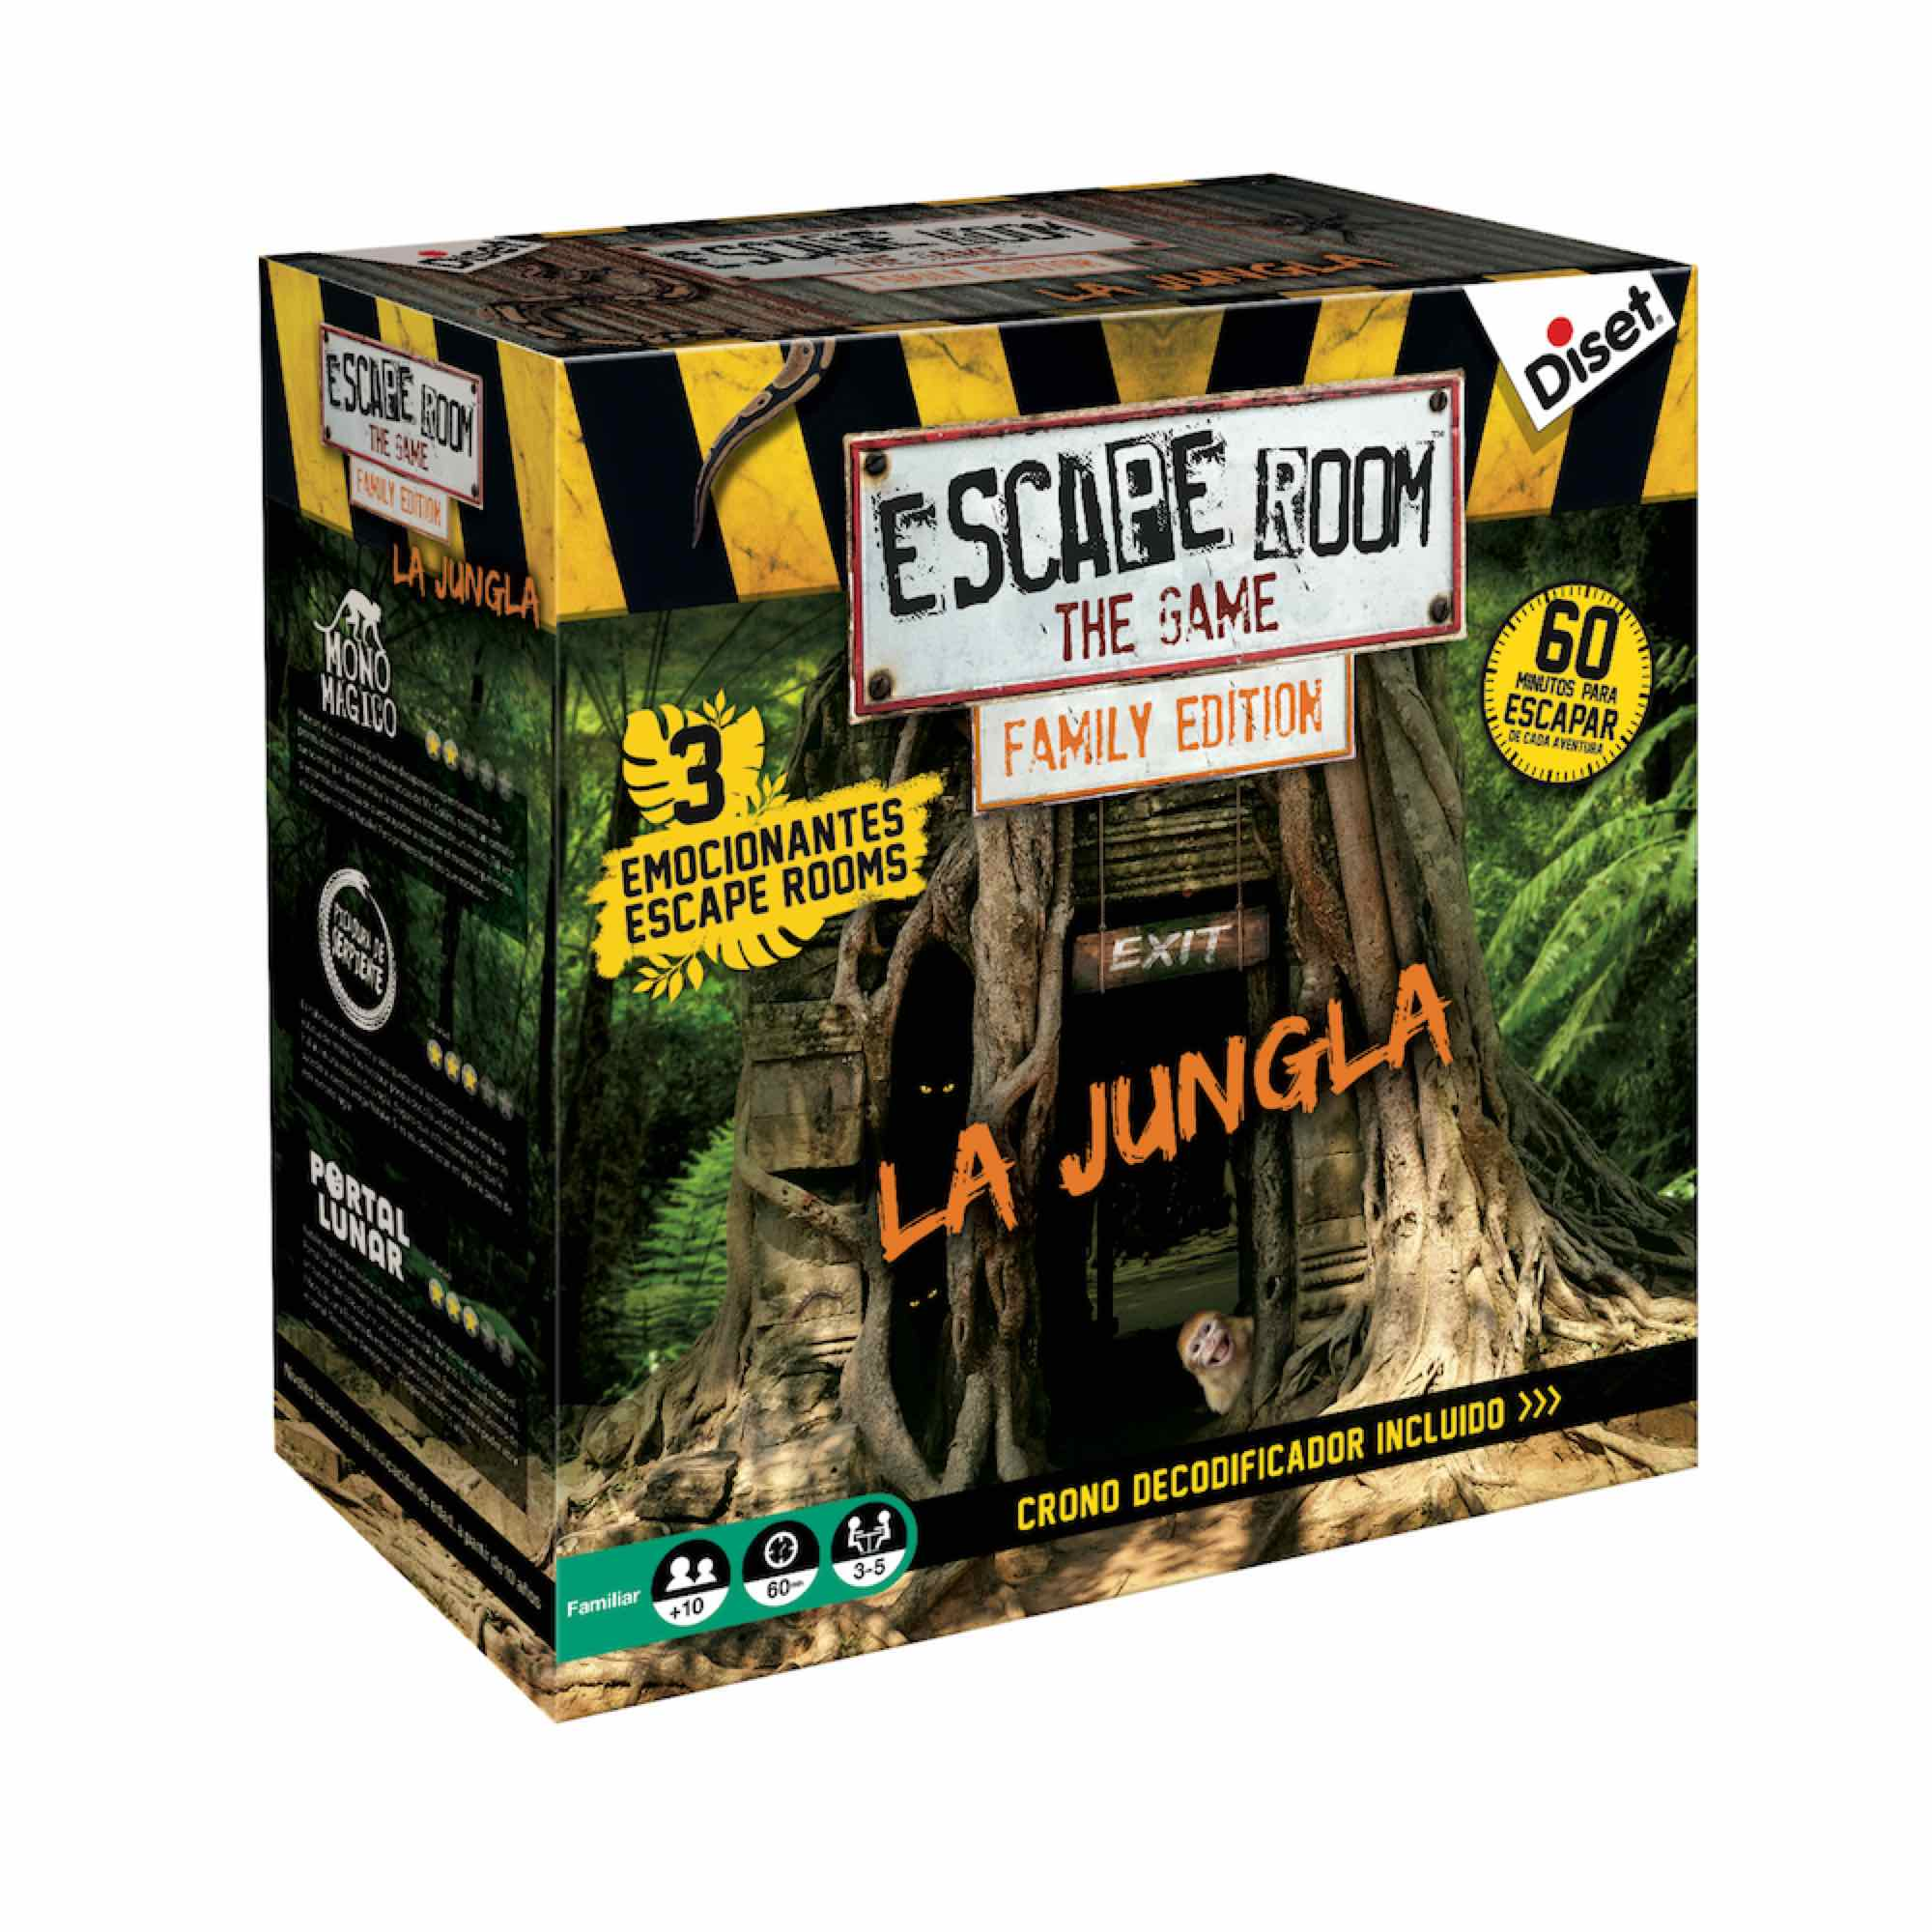 ESCAPE ROOM FAMILY EDITION - LA JUNGLA